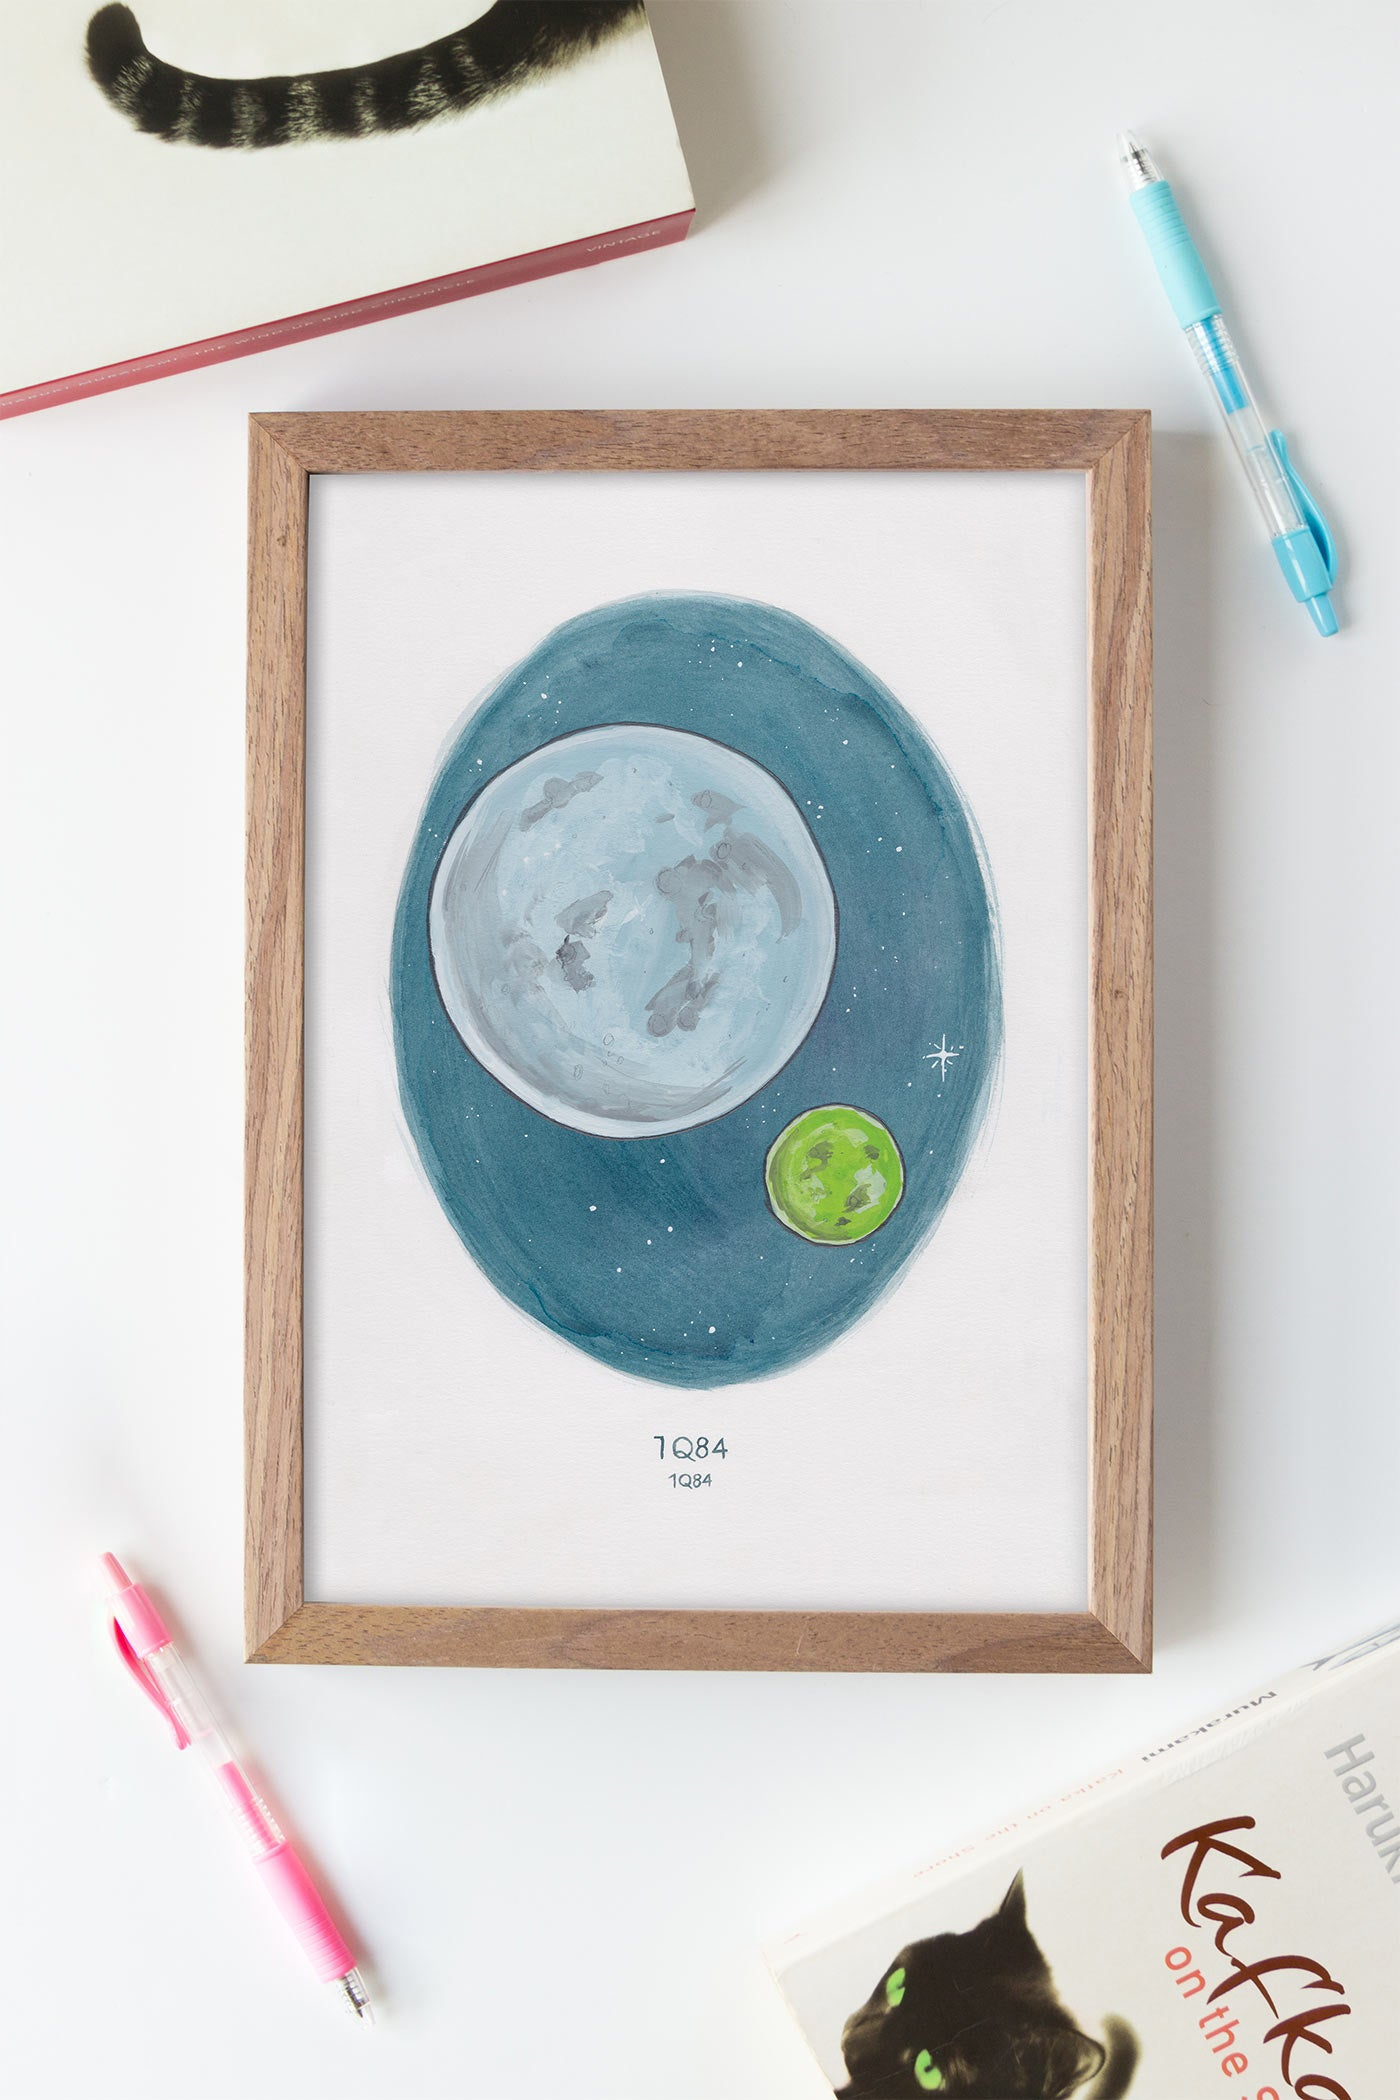 Haruki Murakami's 1Q84 Watercolour Novel Illustration